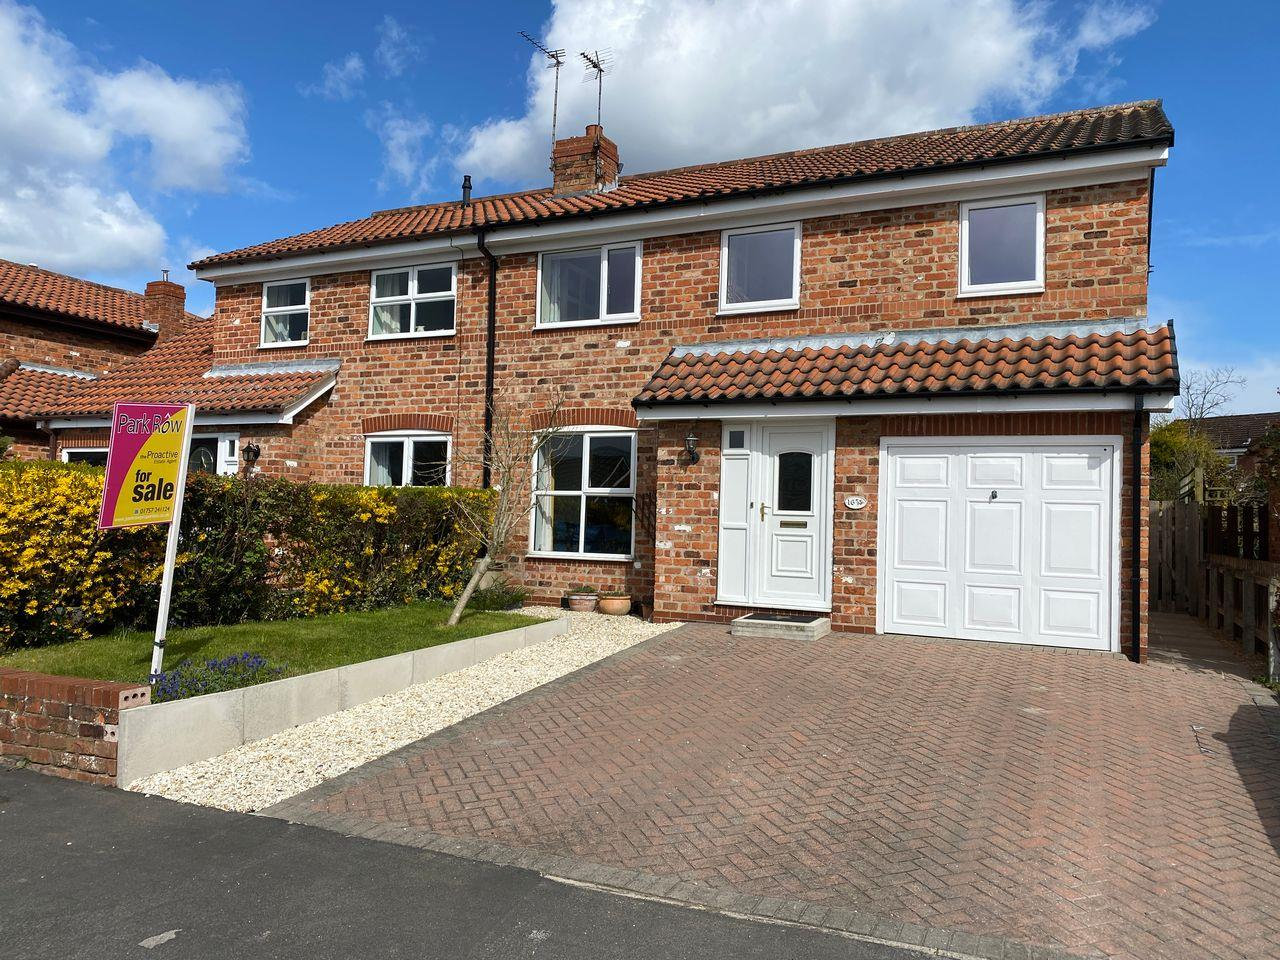 Cawood Road, Wistow, Selby